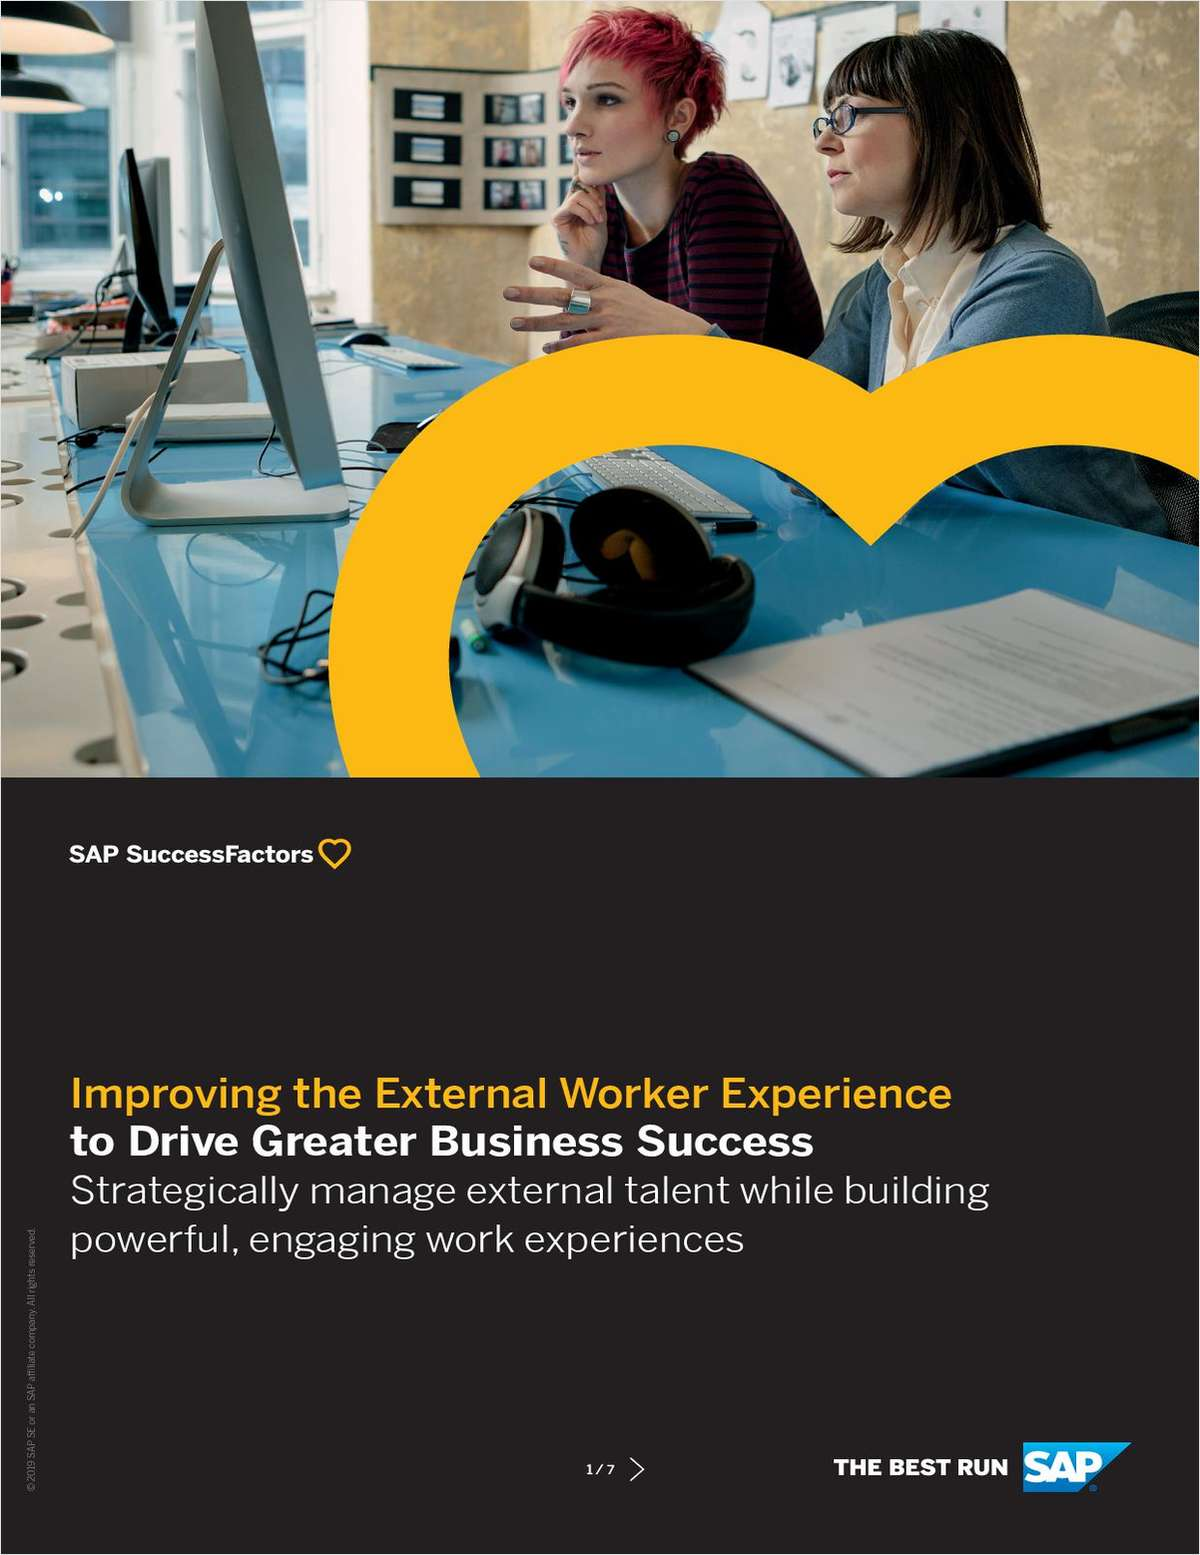 Improving the External Worker Experience to Drive Greater Business Success